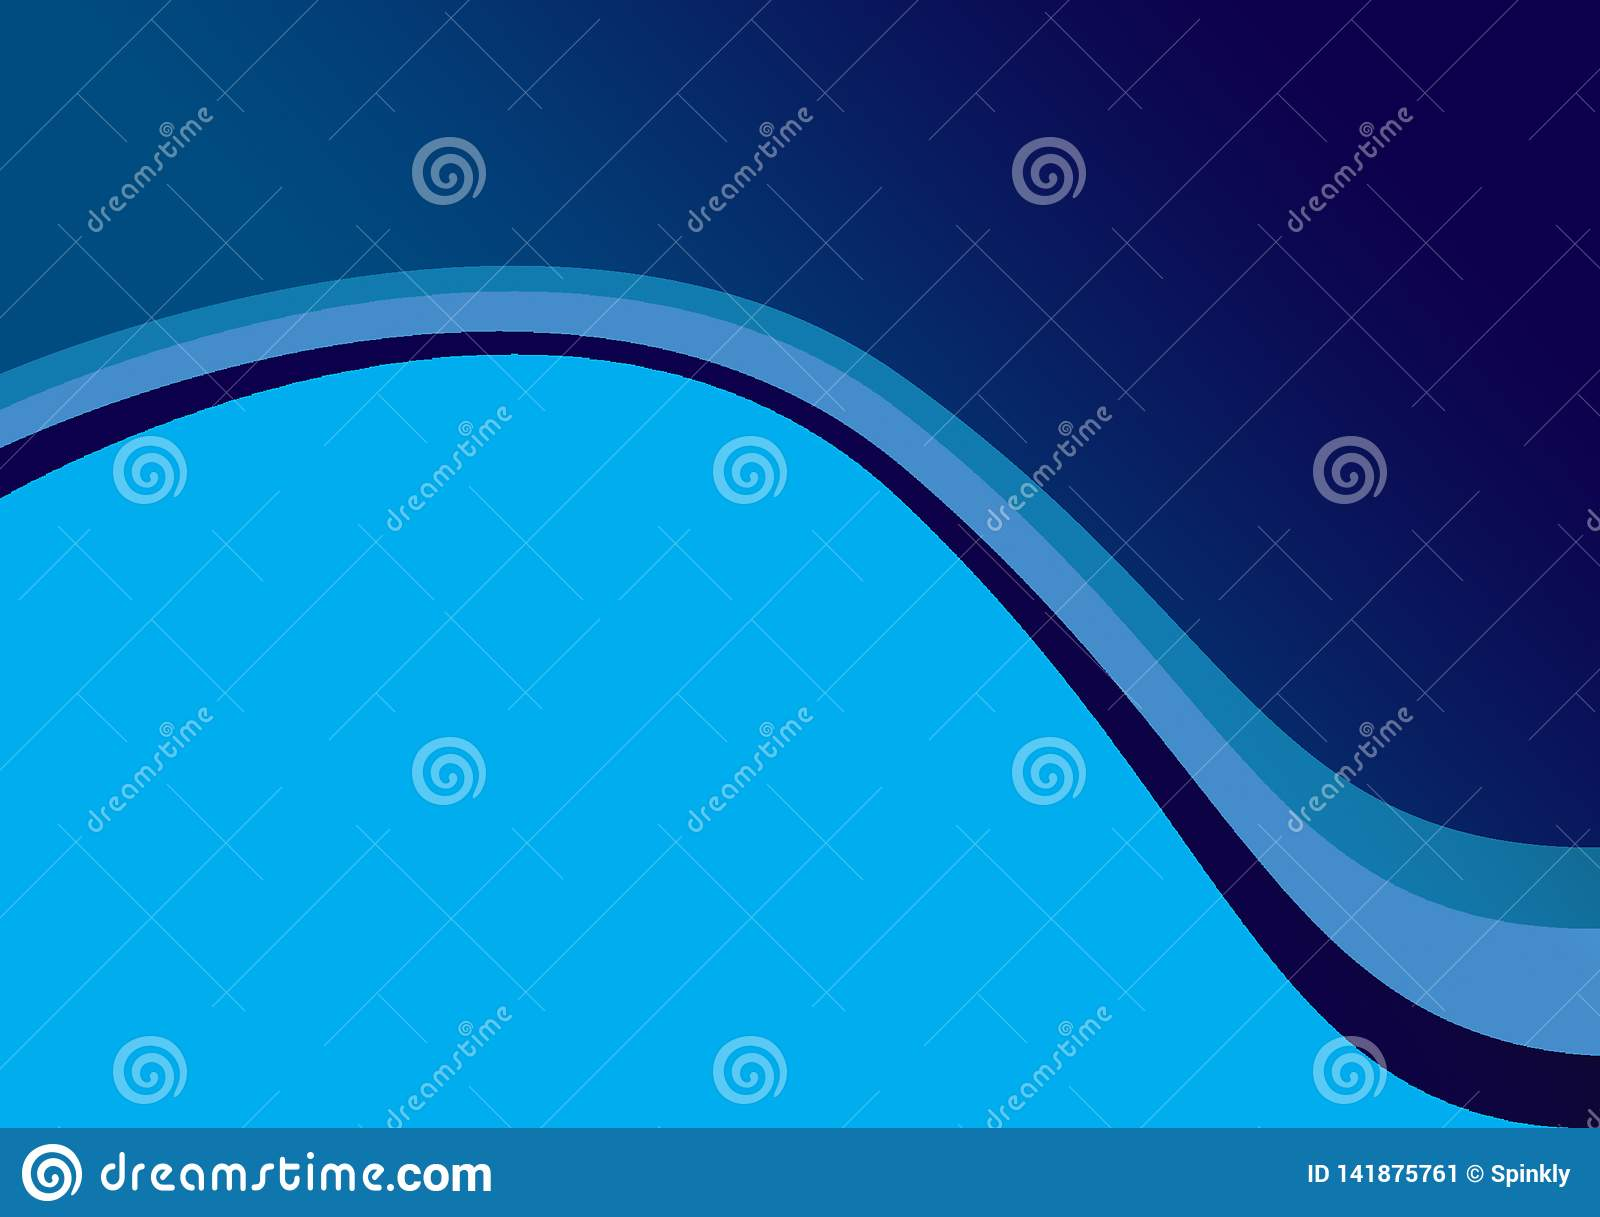 Background linear curvature background design